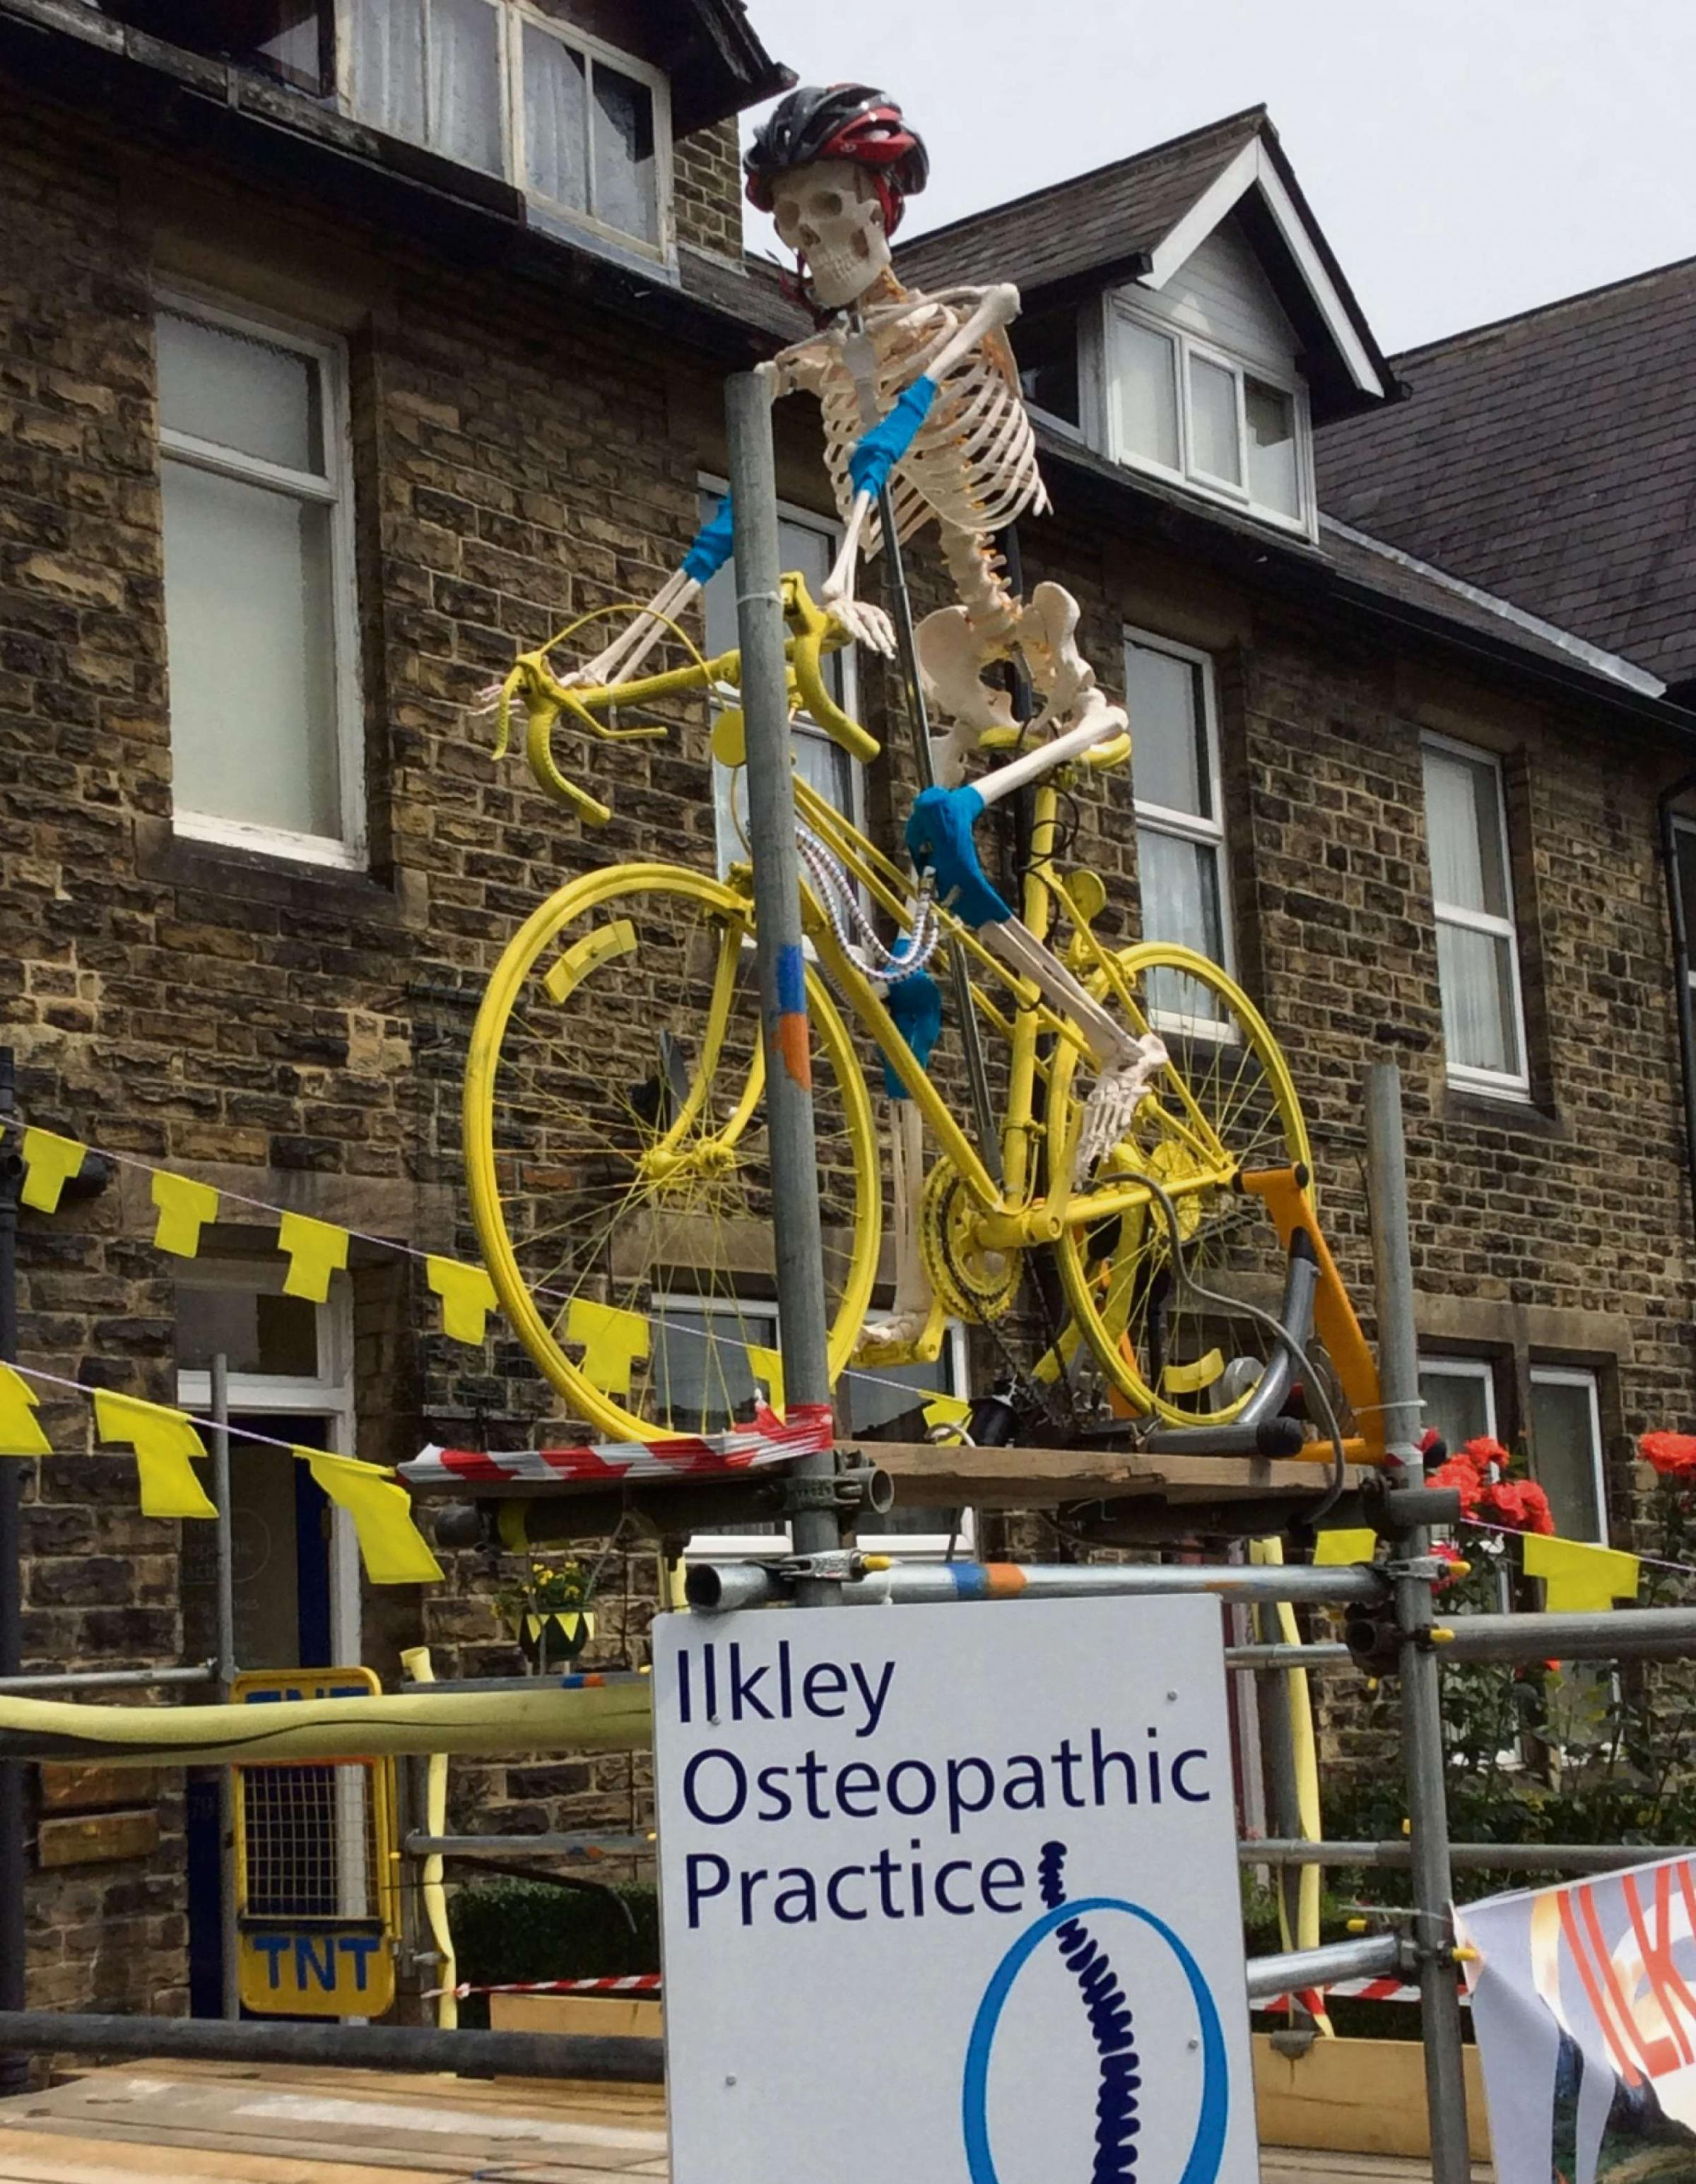 'Steve the Skeleton' offering 25% off at Ilkley osteopaths